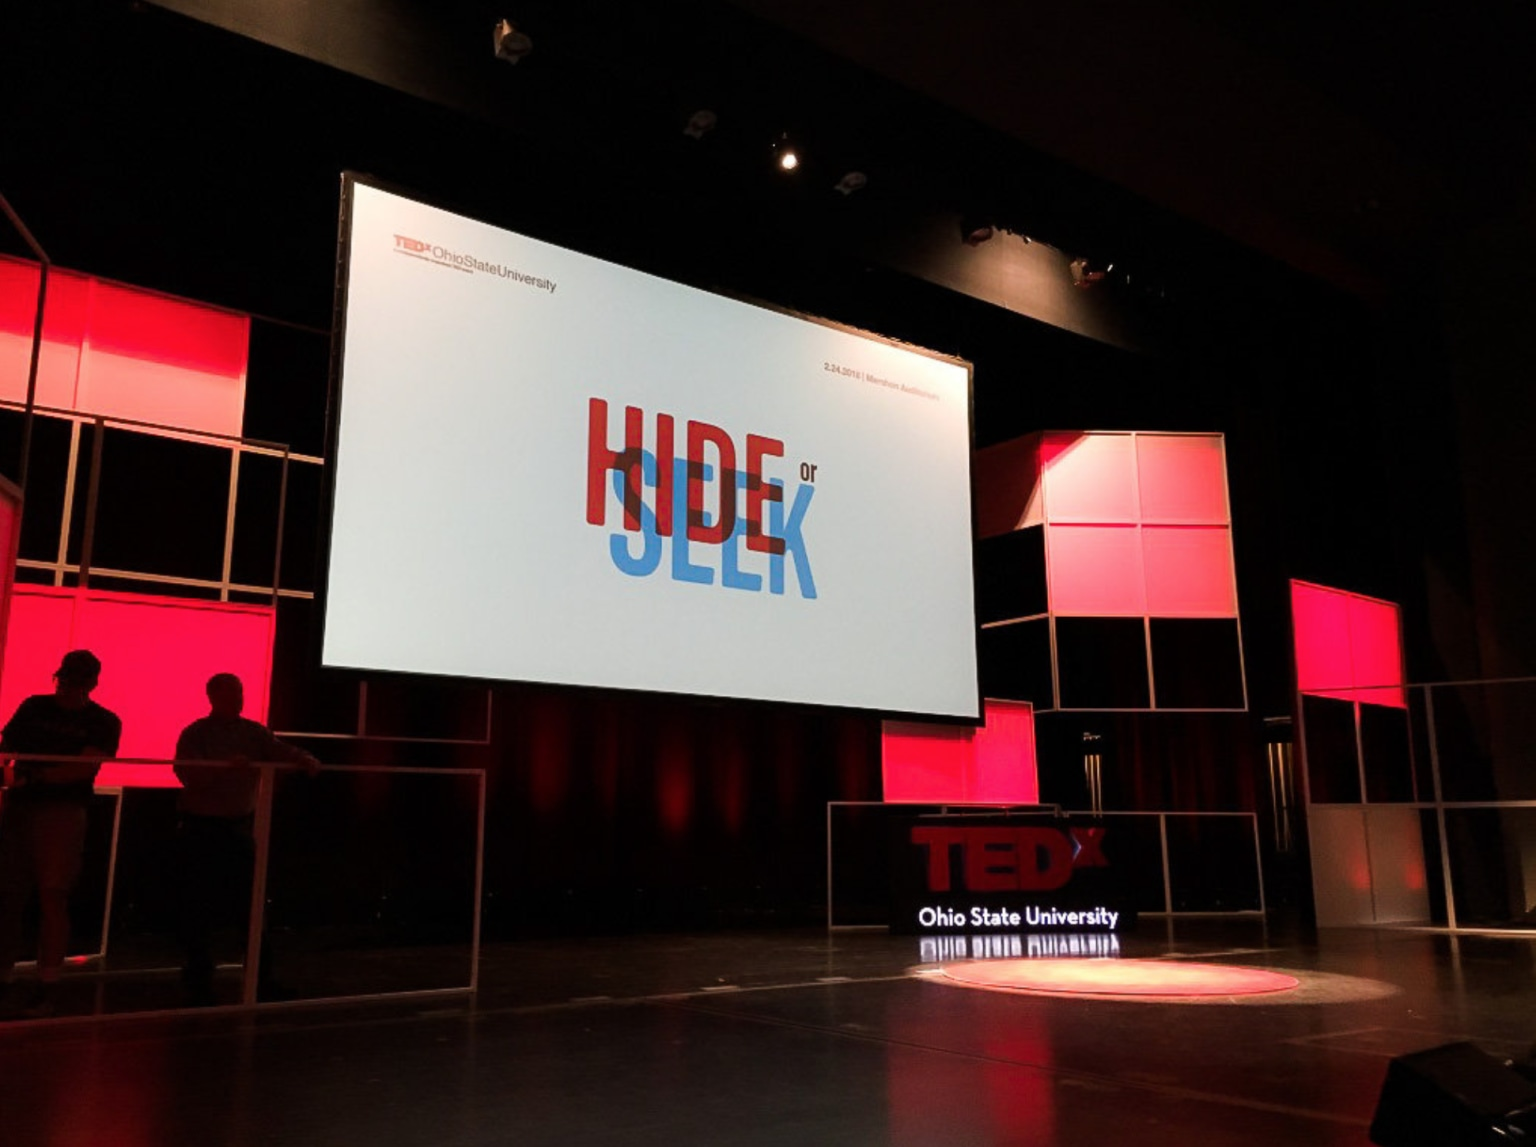 TEDxOhioStateU: Hide or Seek